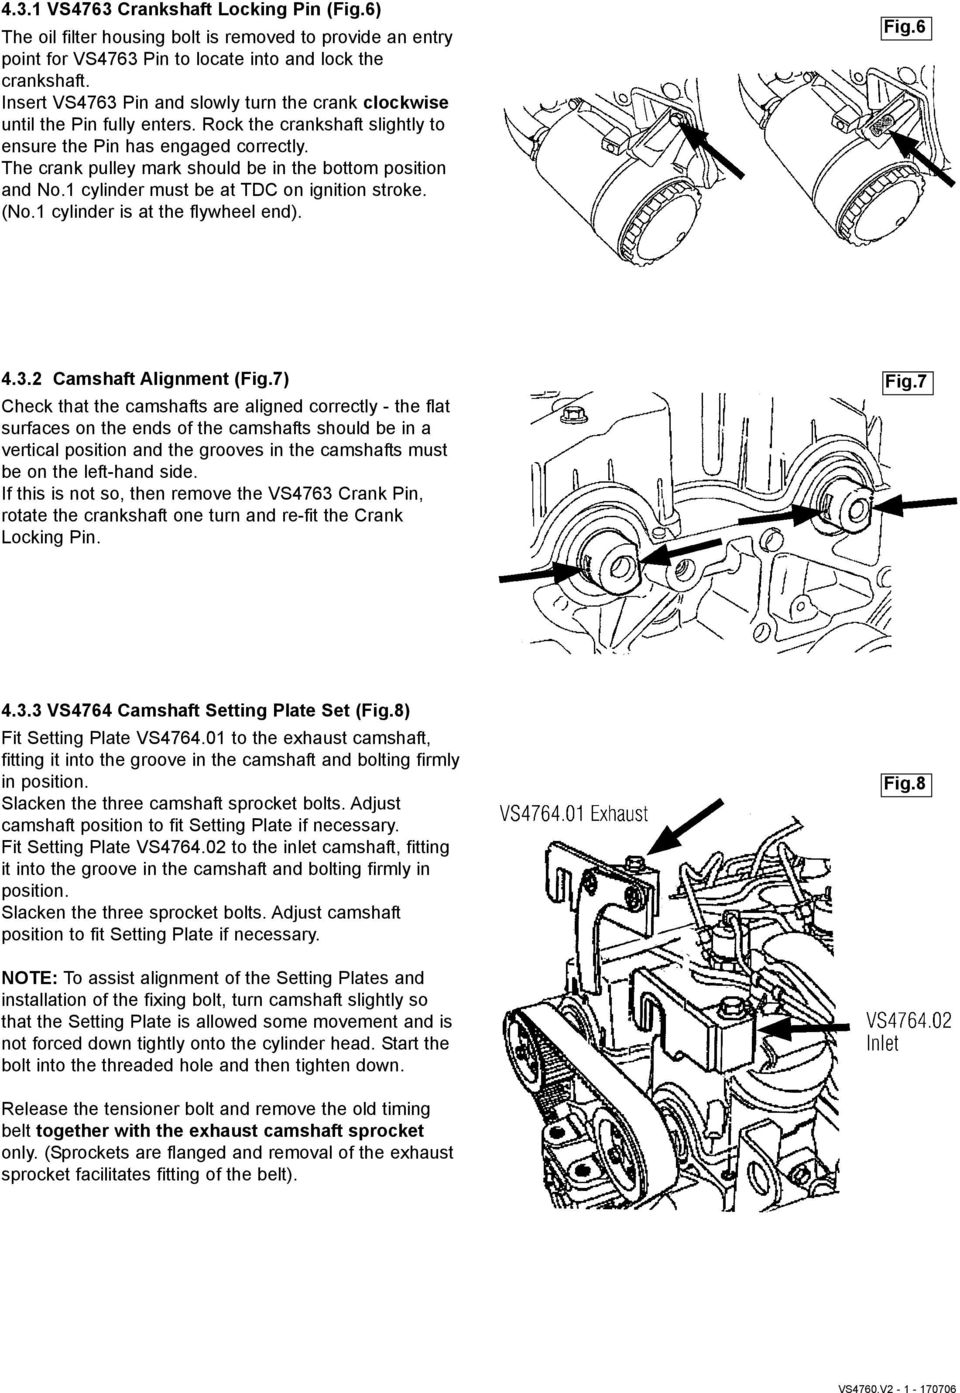 Vs4760v2 Instructions For Diesel Engine Setting Locking Tool Kit Renault Vel Satis Wiring Diagram The Crank Pulley Mark Should Be In Bottom Position And No1 Cylinder Must